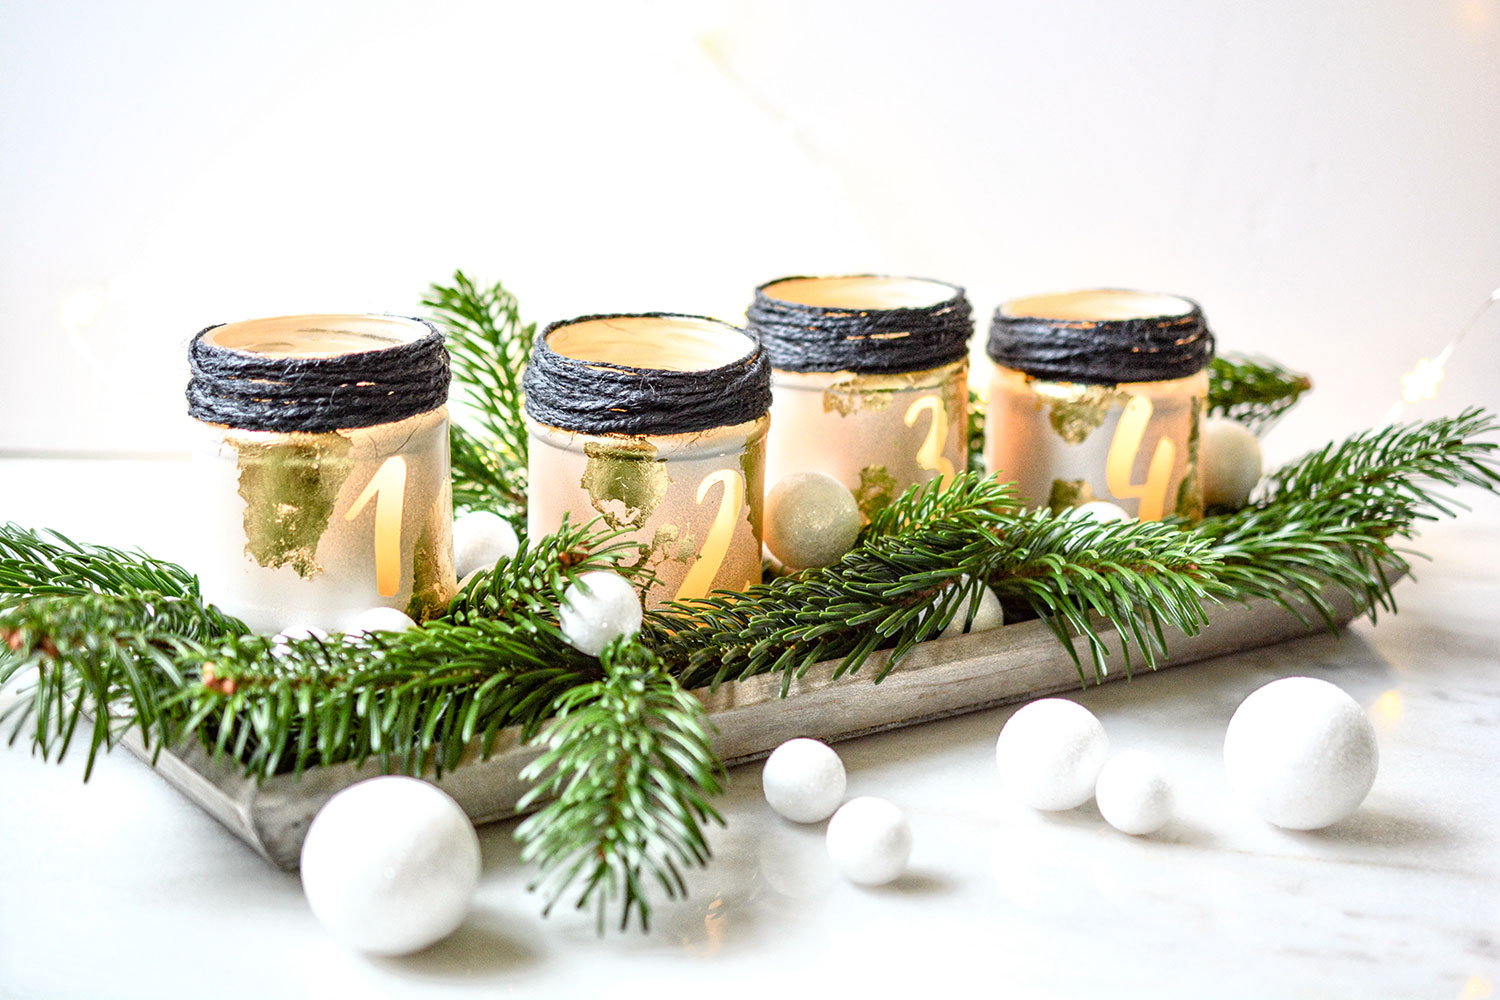 Adventkranz Upcycling-DIY